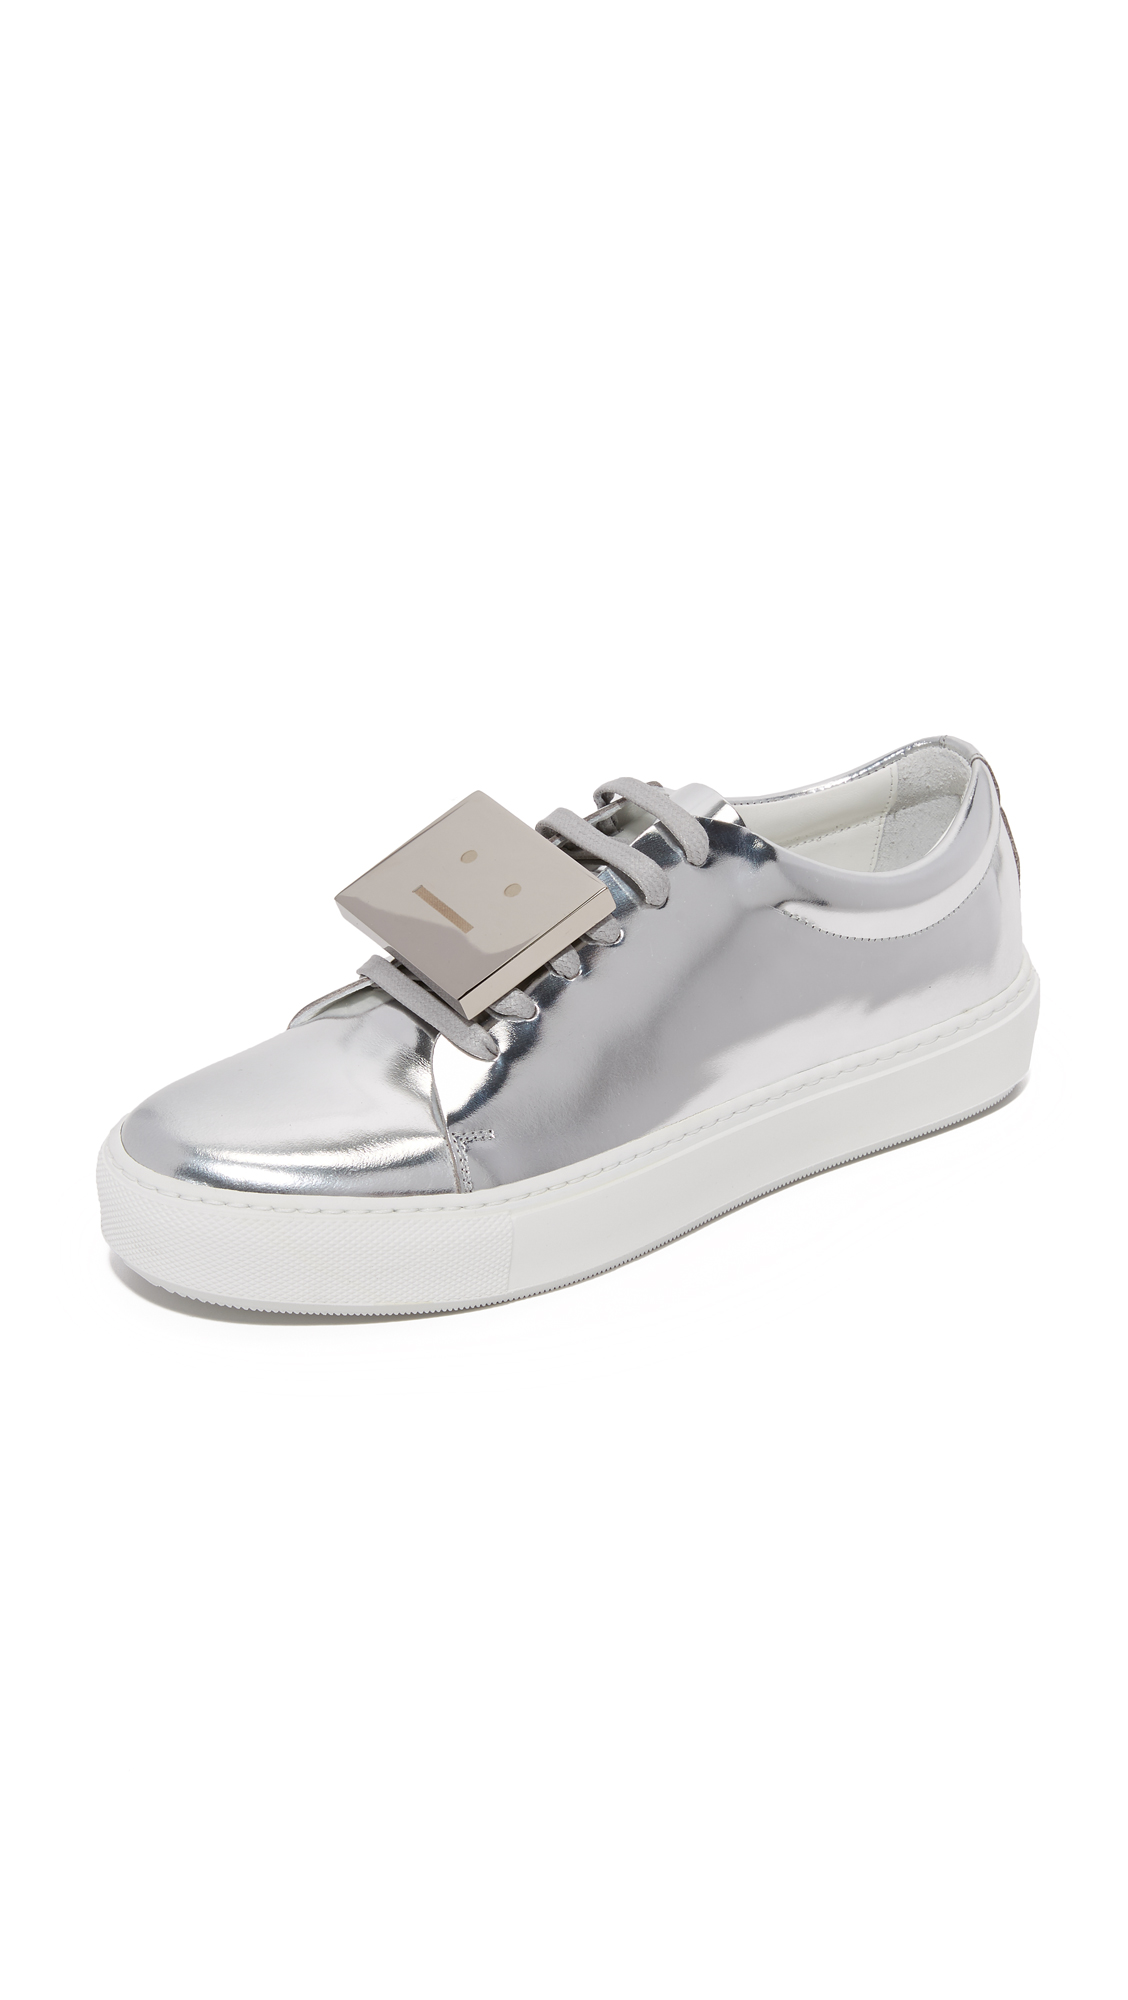 Acne Studios Adriana Metallic Sneakers - Silver at Shopbop